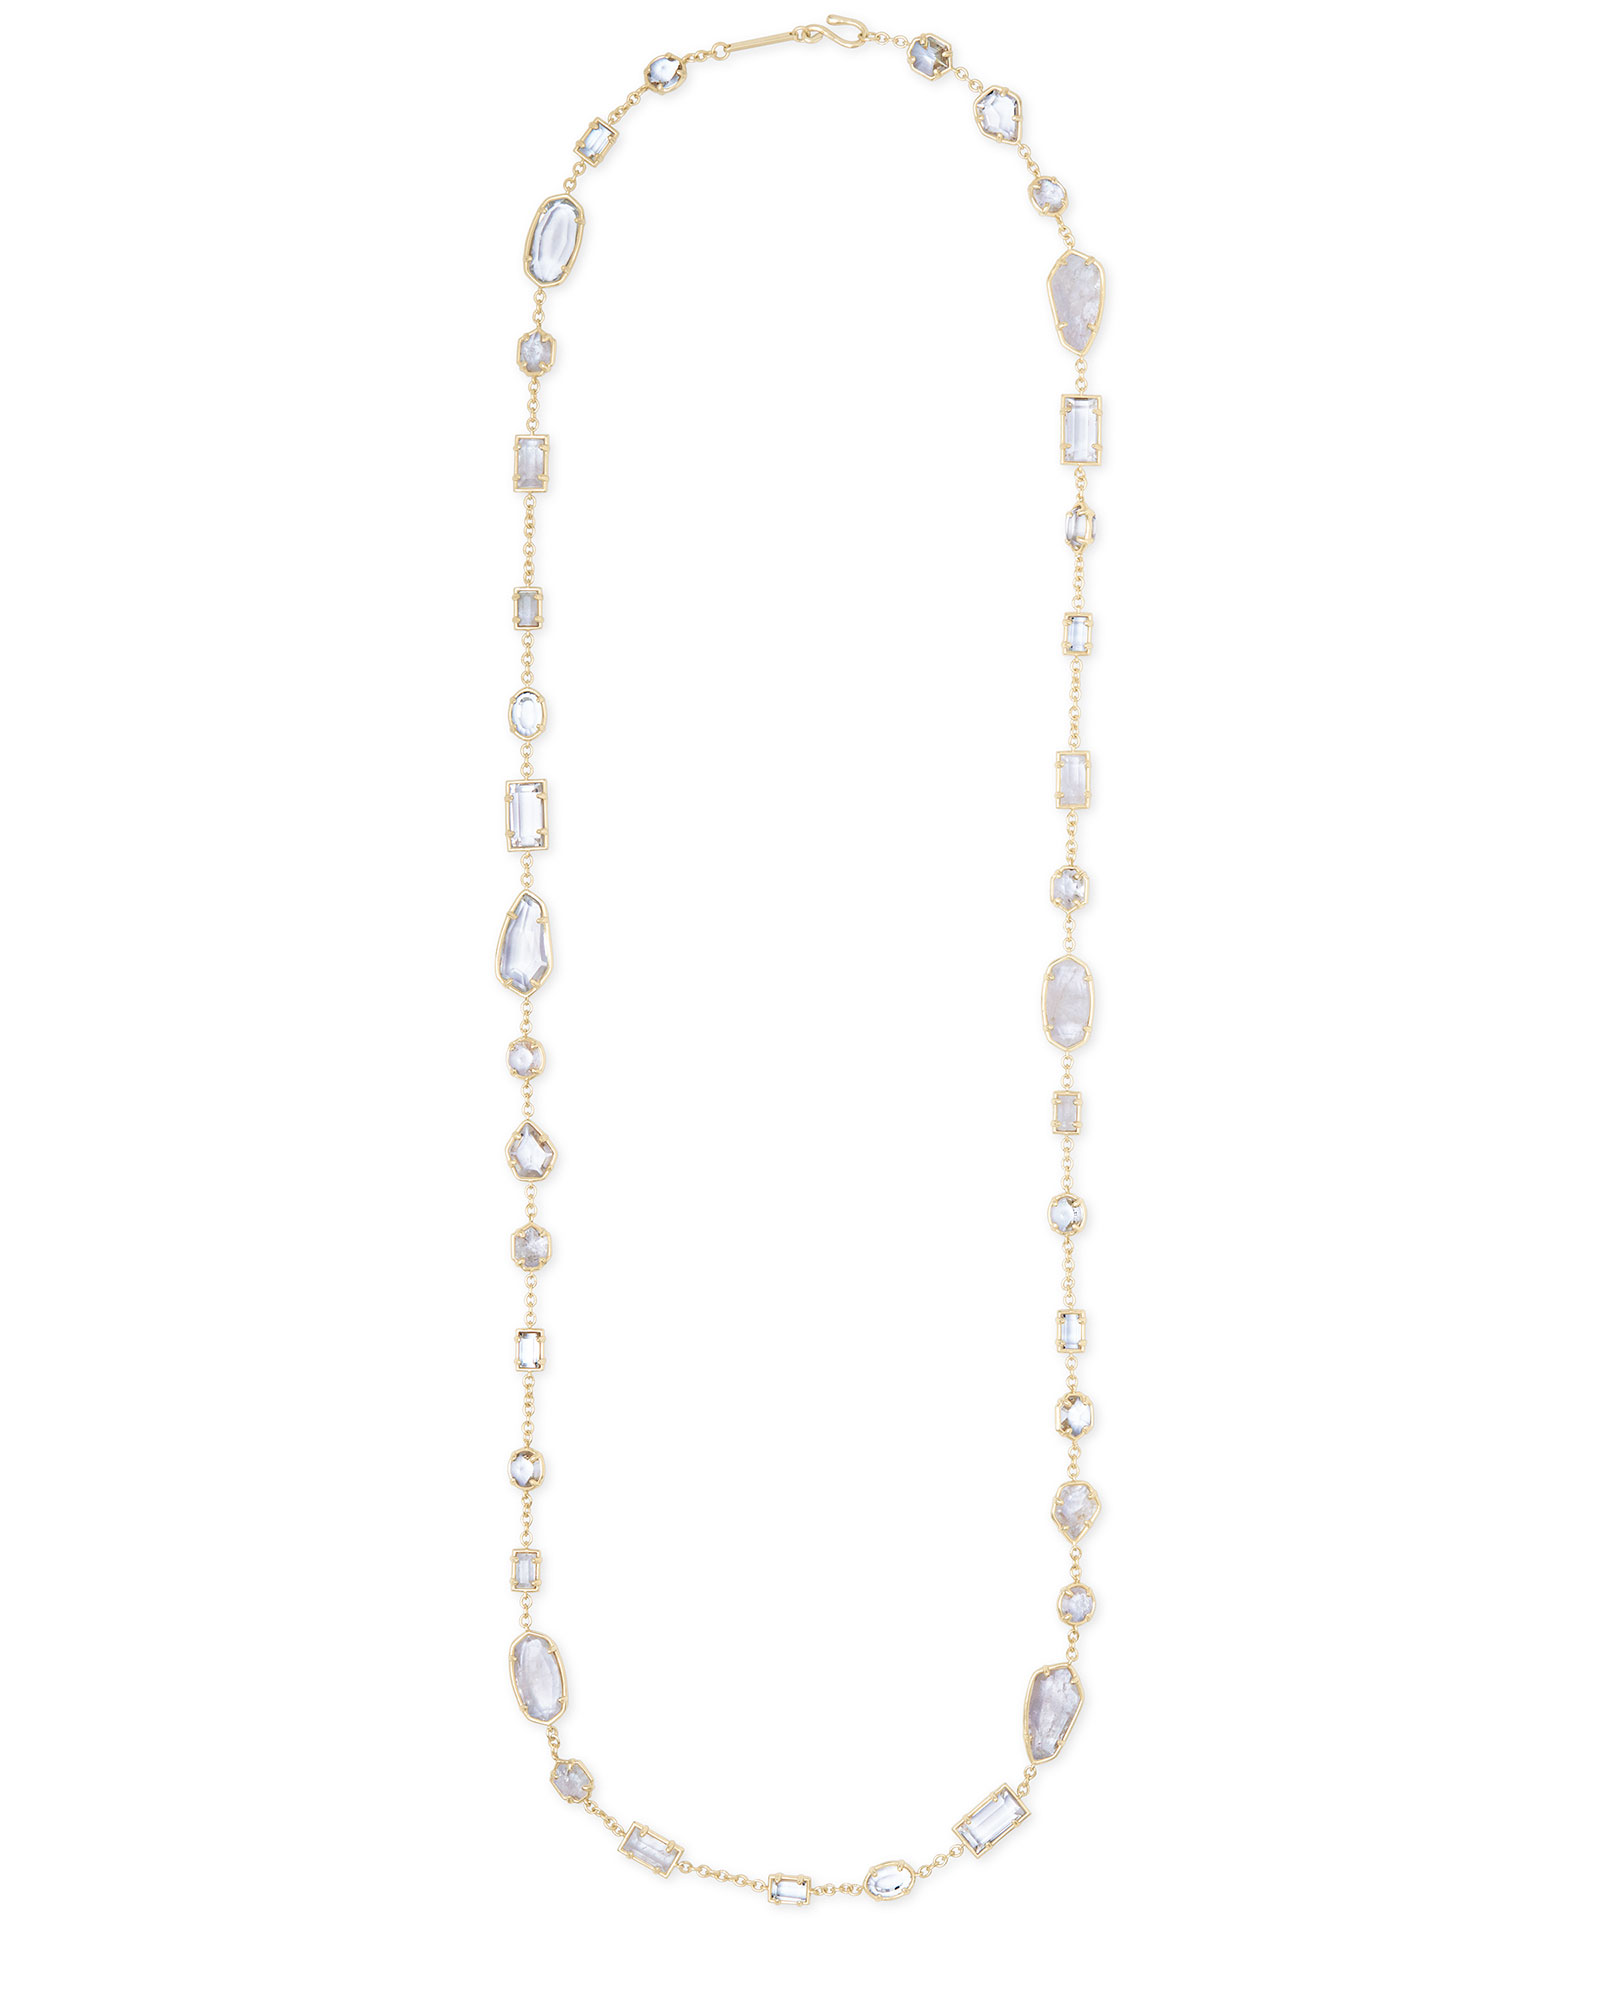 Joann Gold Long Necklace in Rock Crystal Mix